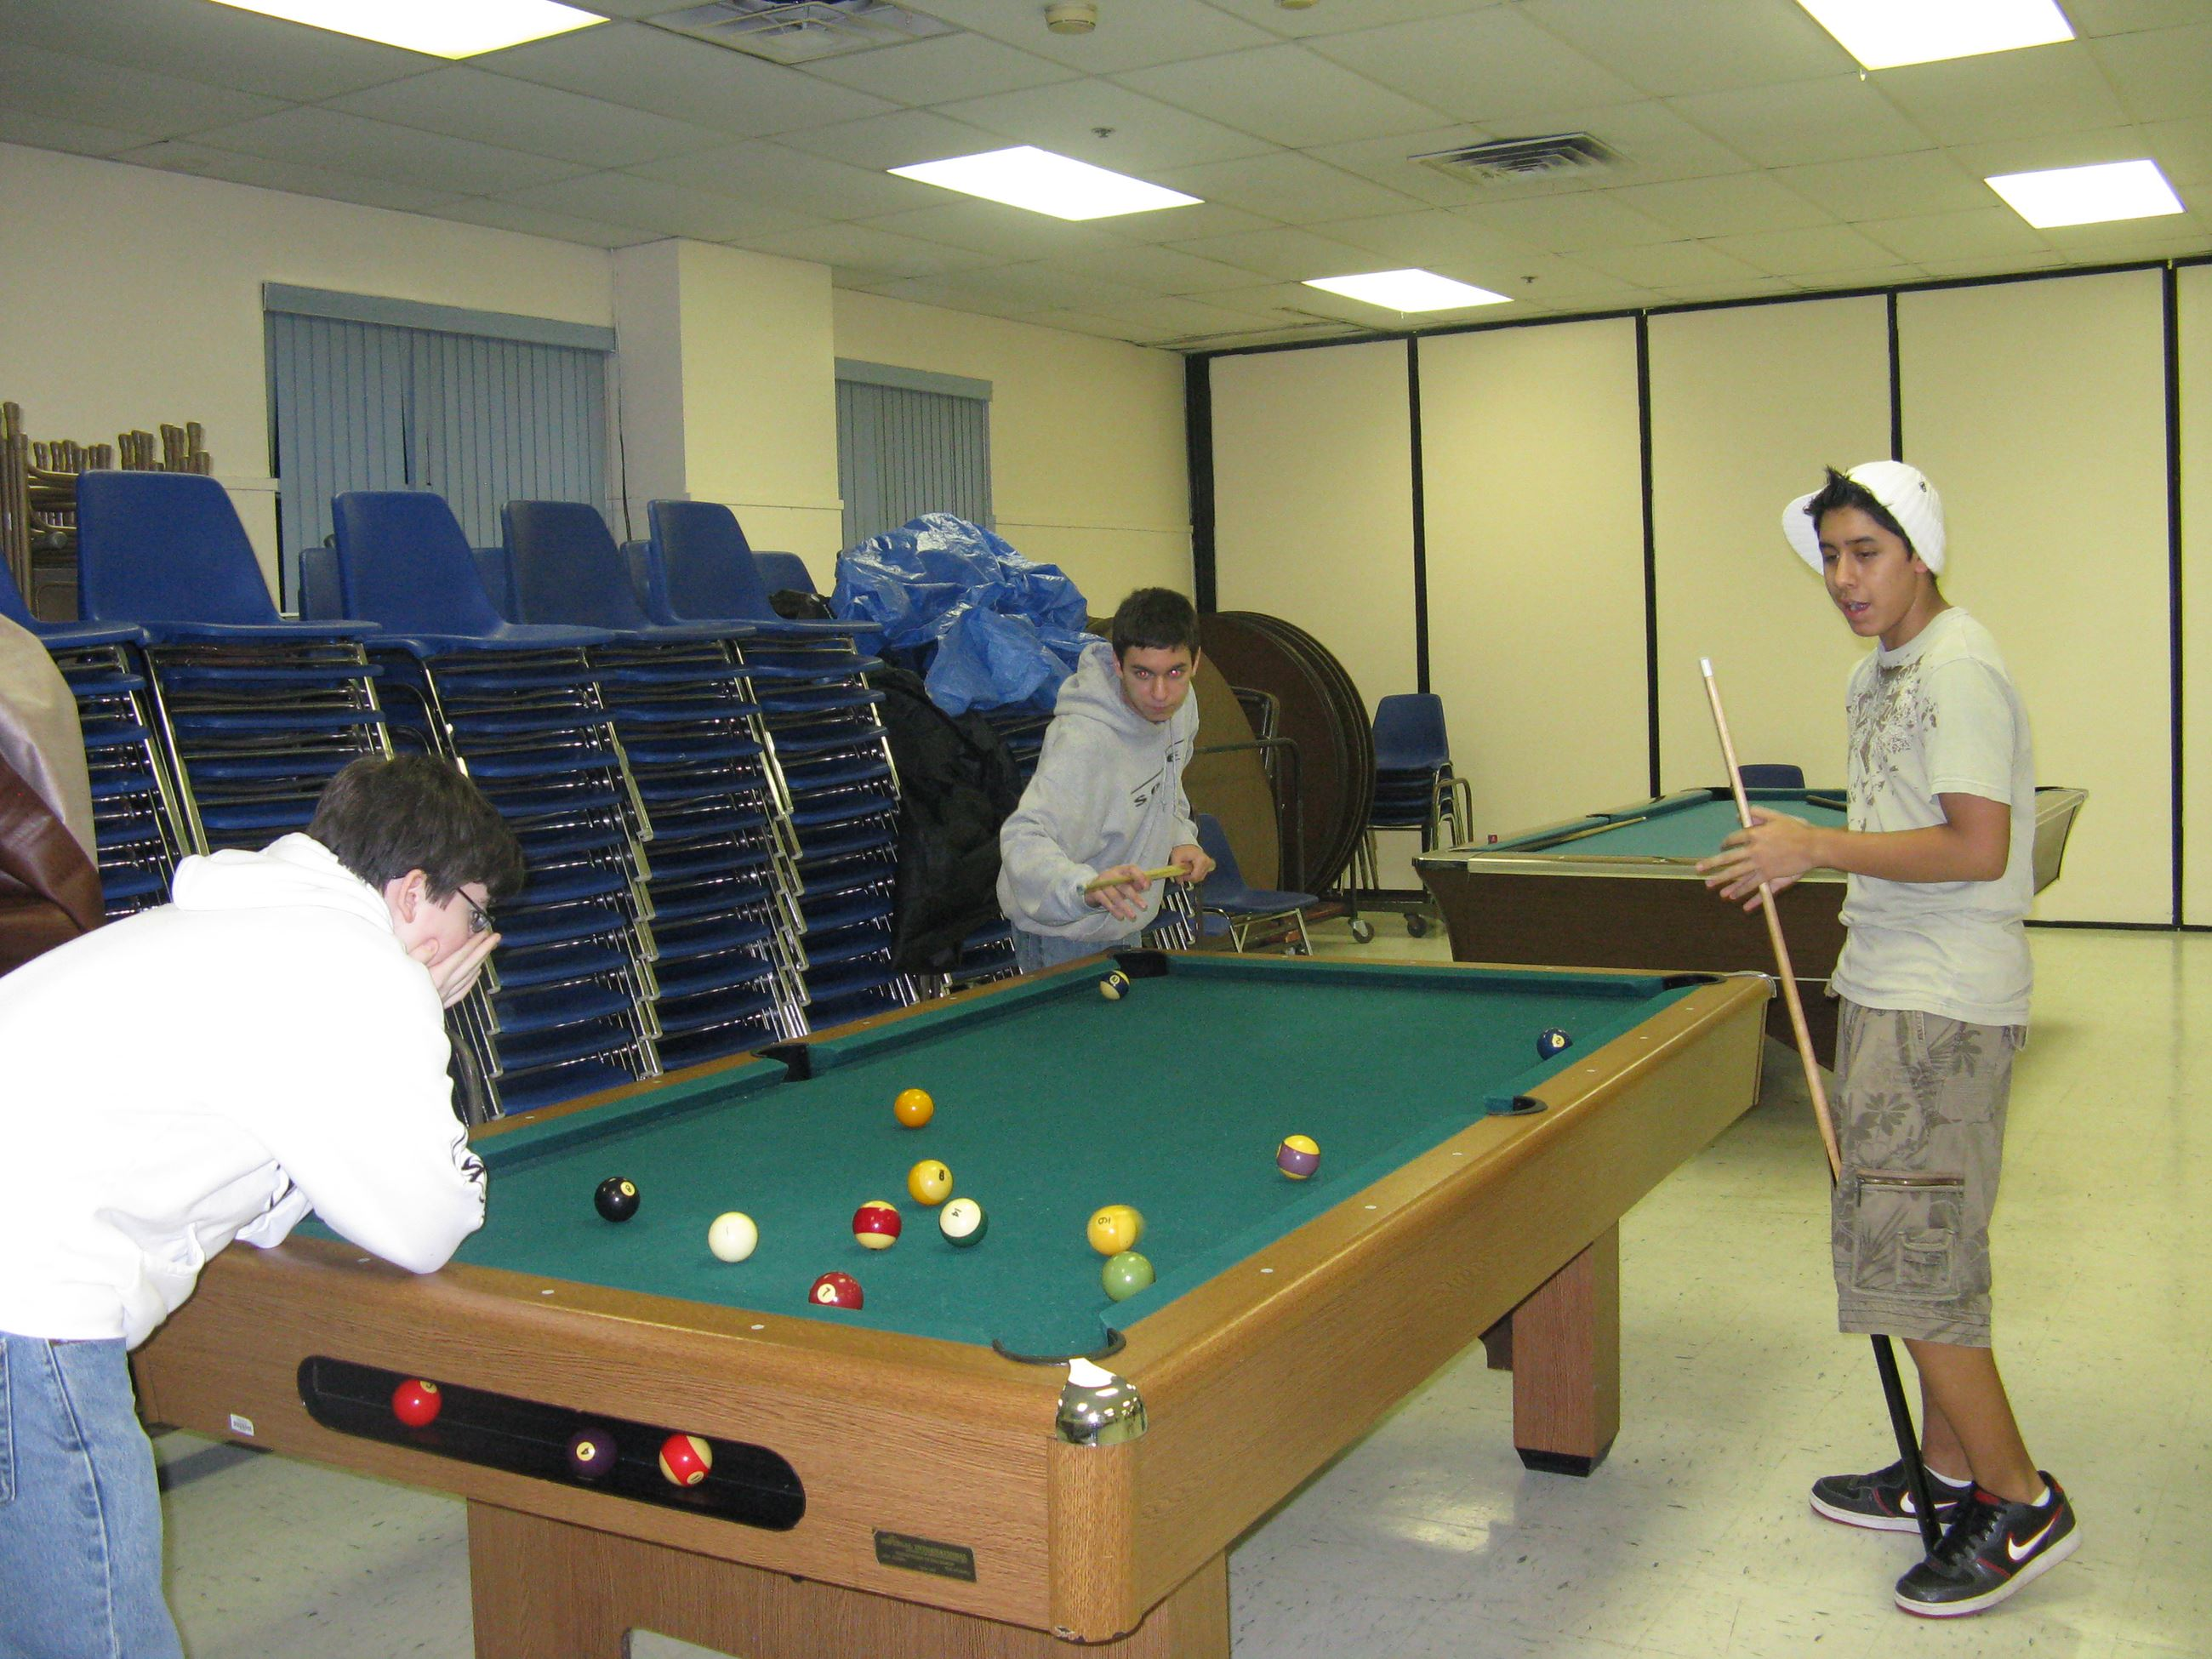 Sean Dunn, David Moreno and Brandon Conti Enjoy a Game of Pool